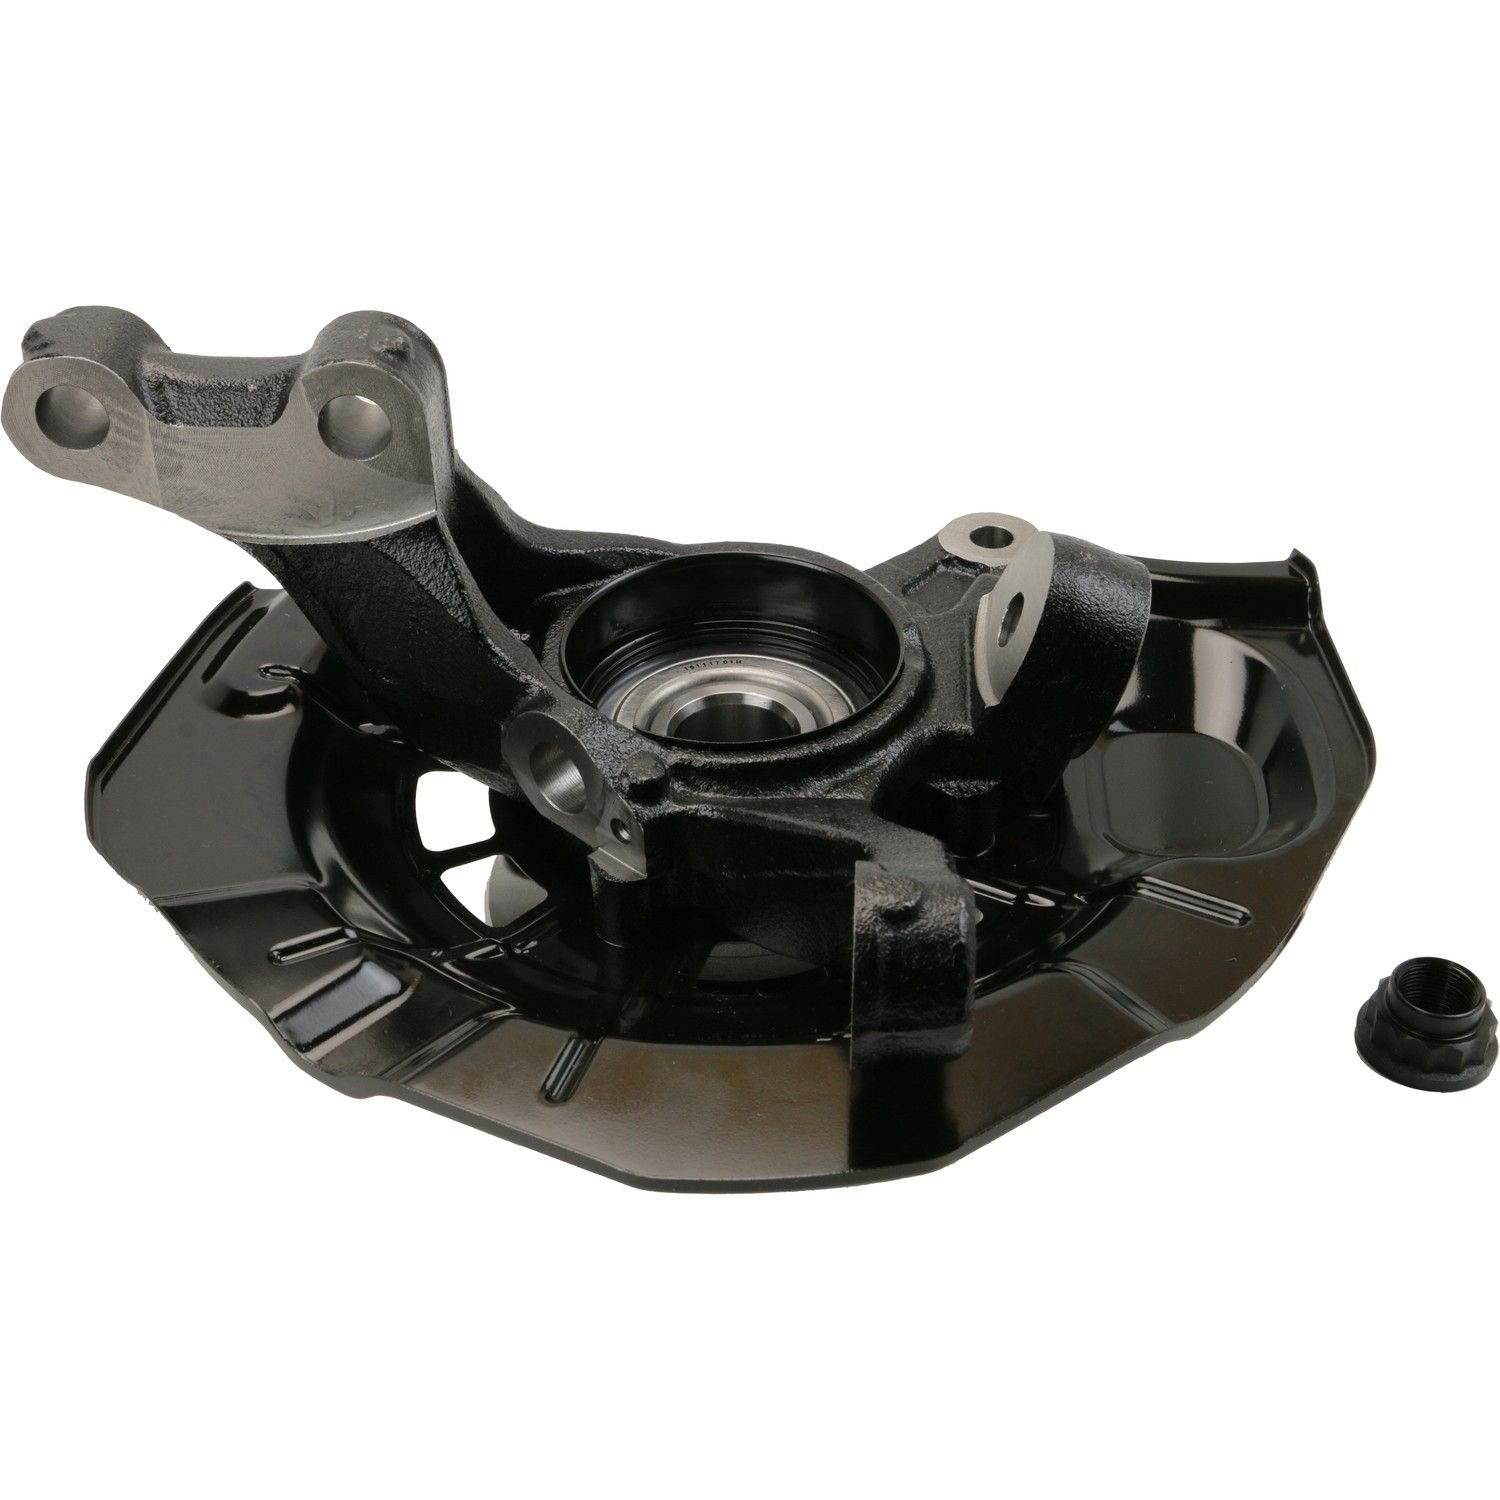 Suspension Knuckle Assembly Replacement (Genuine, MTC